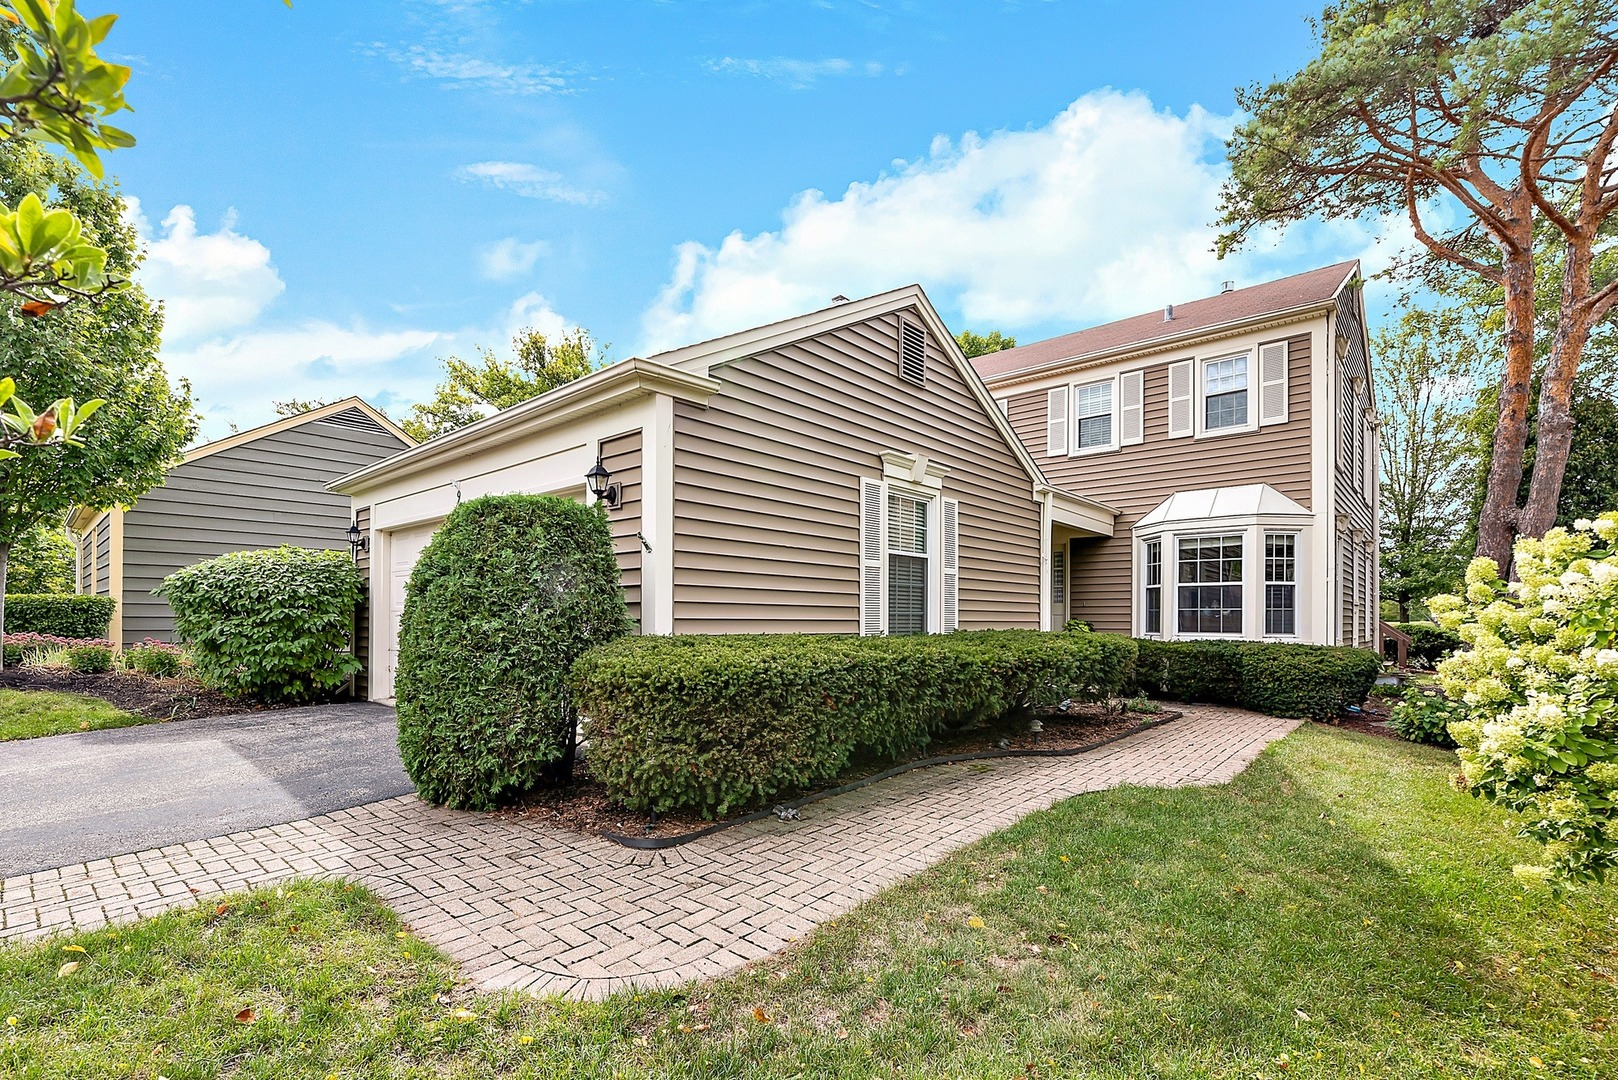 9 The Court of Charlwood, Northbrook IL 60062